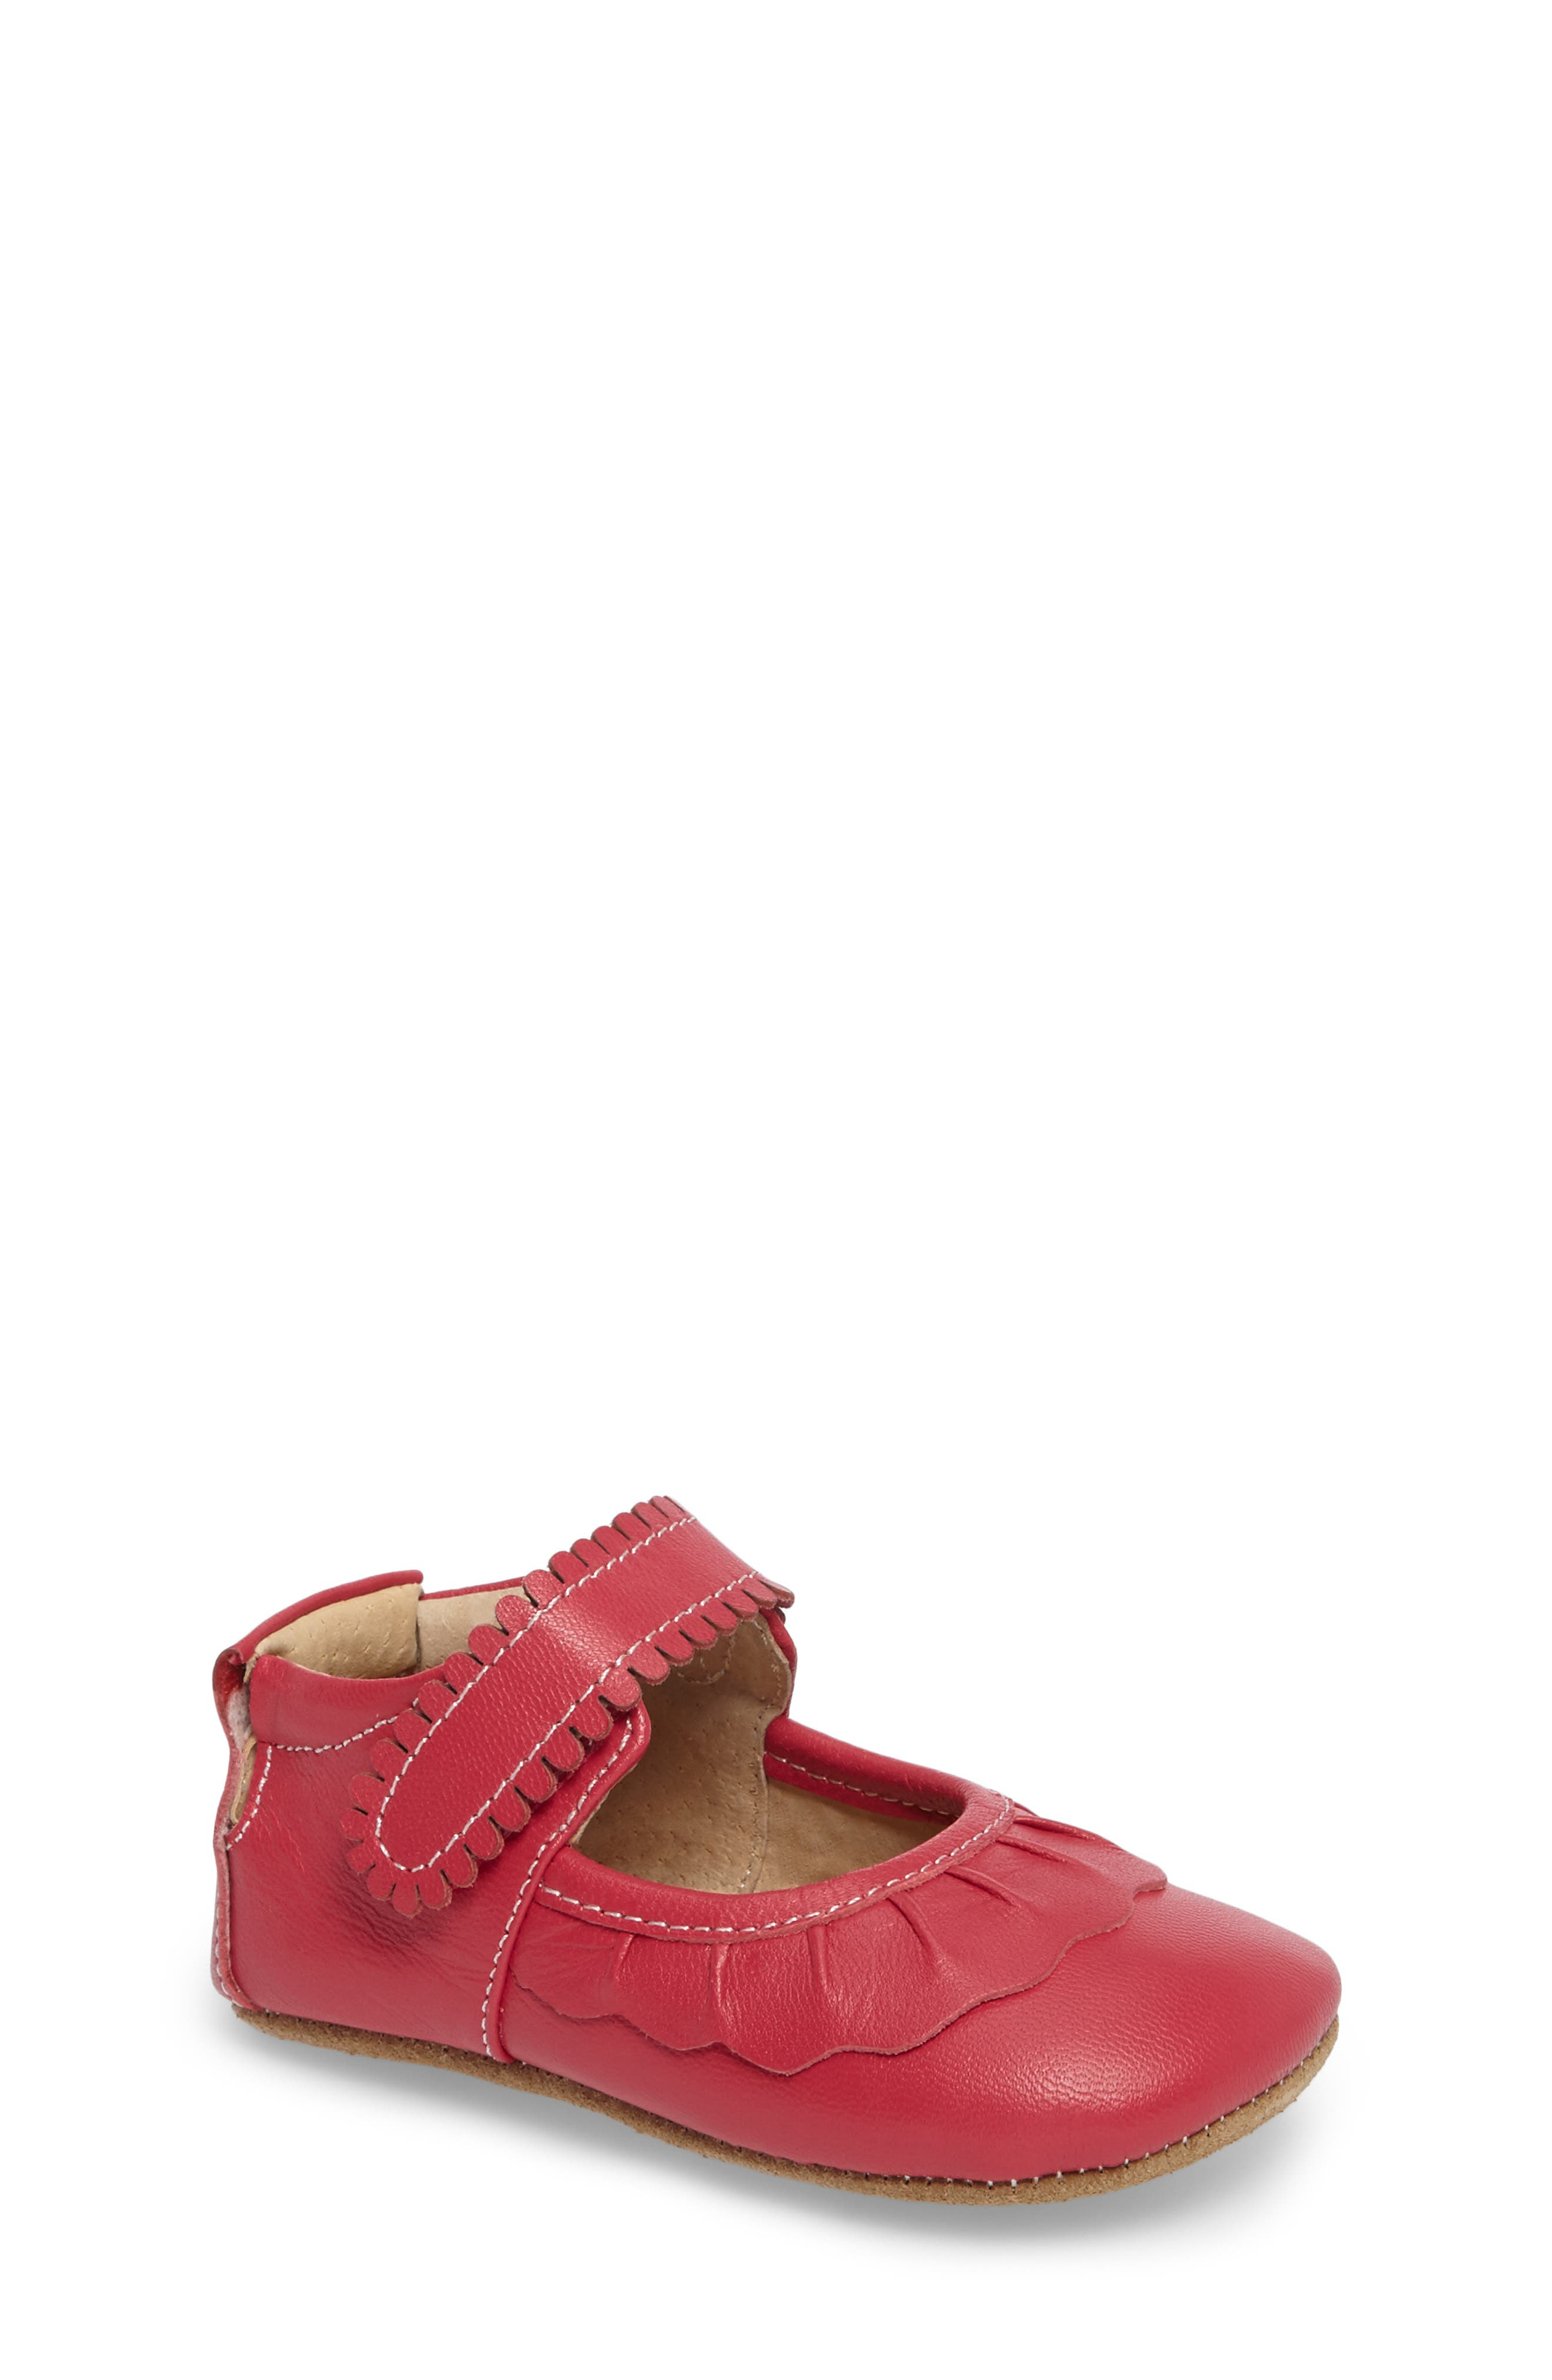 'Ruche' Mary Jane Crib Shoe,                         Main,                         color, HOT PINK LEATHER